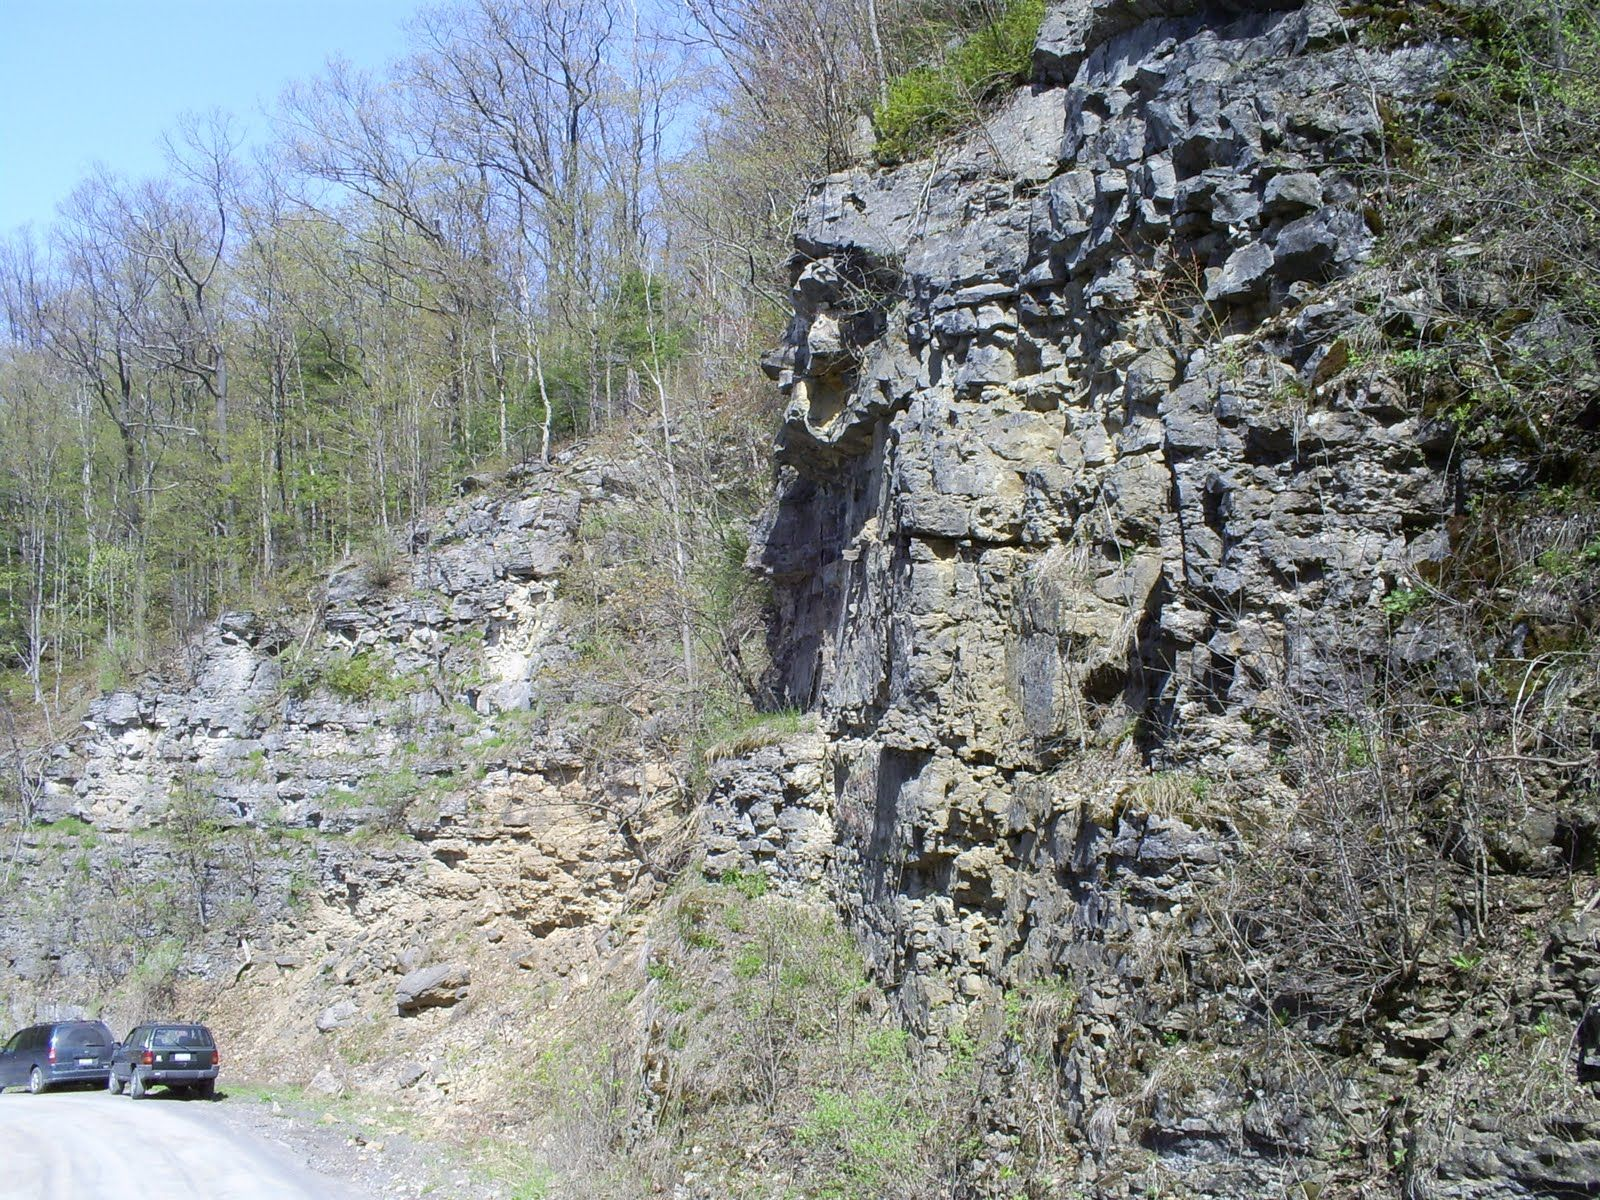 Mosquito Point Outcrop in Munnsville with Coeyman's Limestone